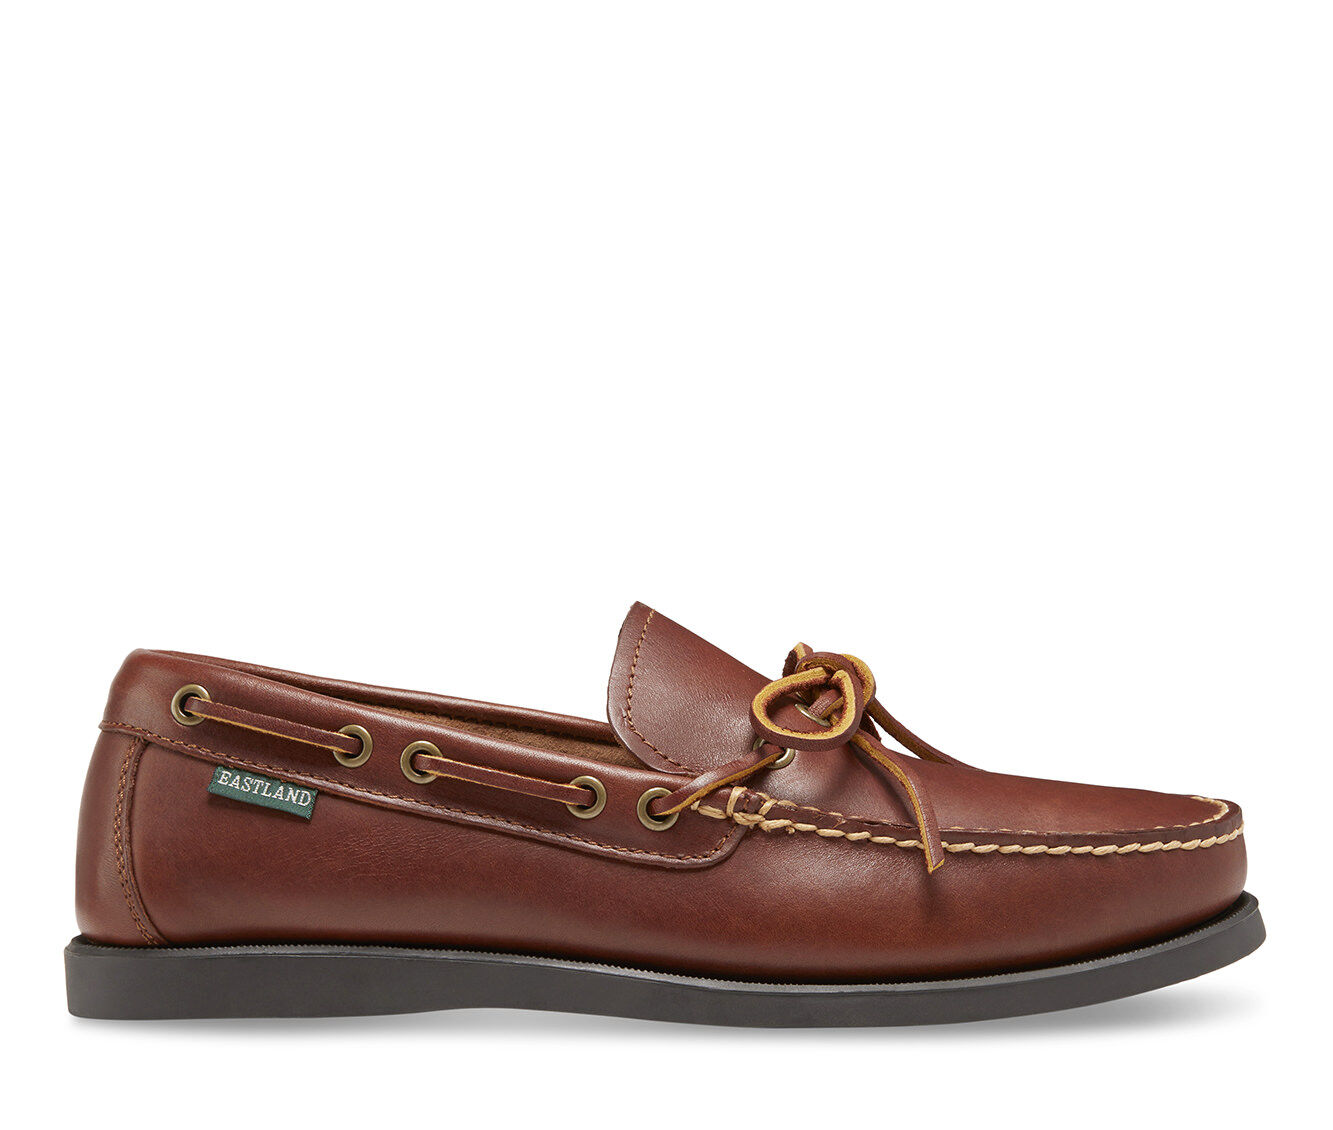 best sell Men's Eastland Yarmouth Boat Shoes Tan